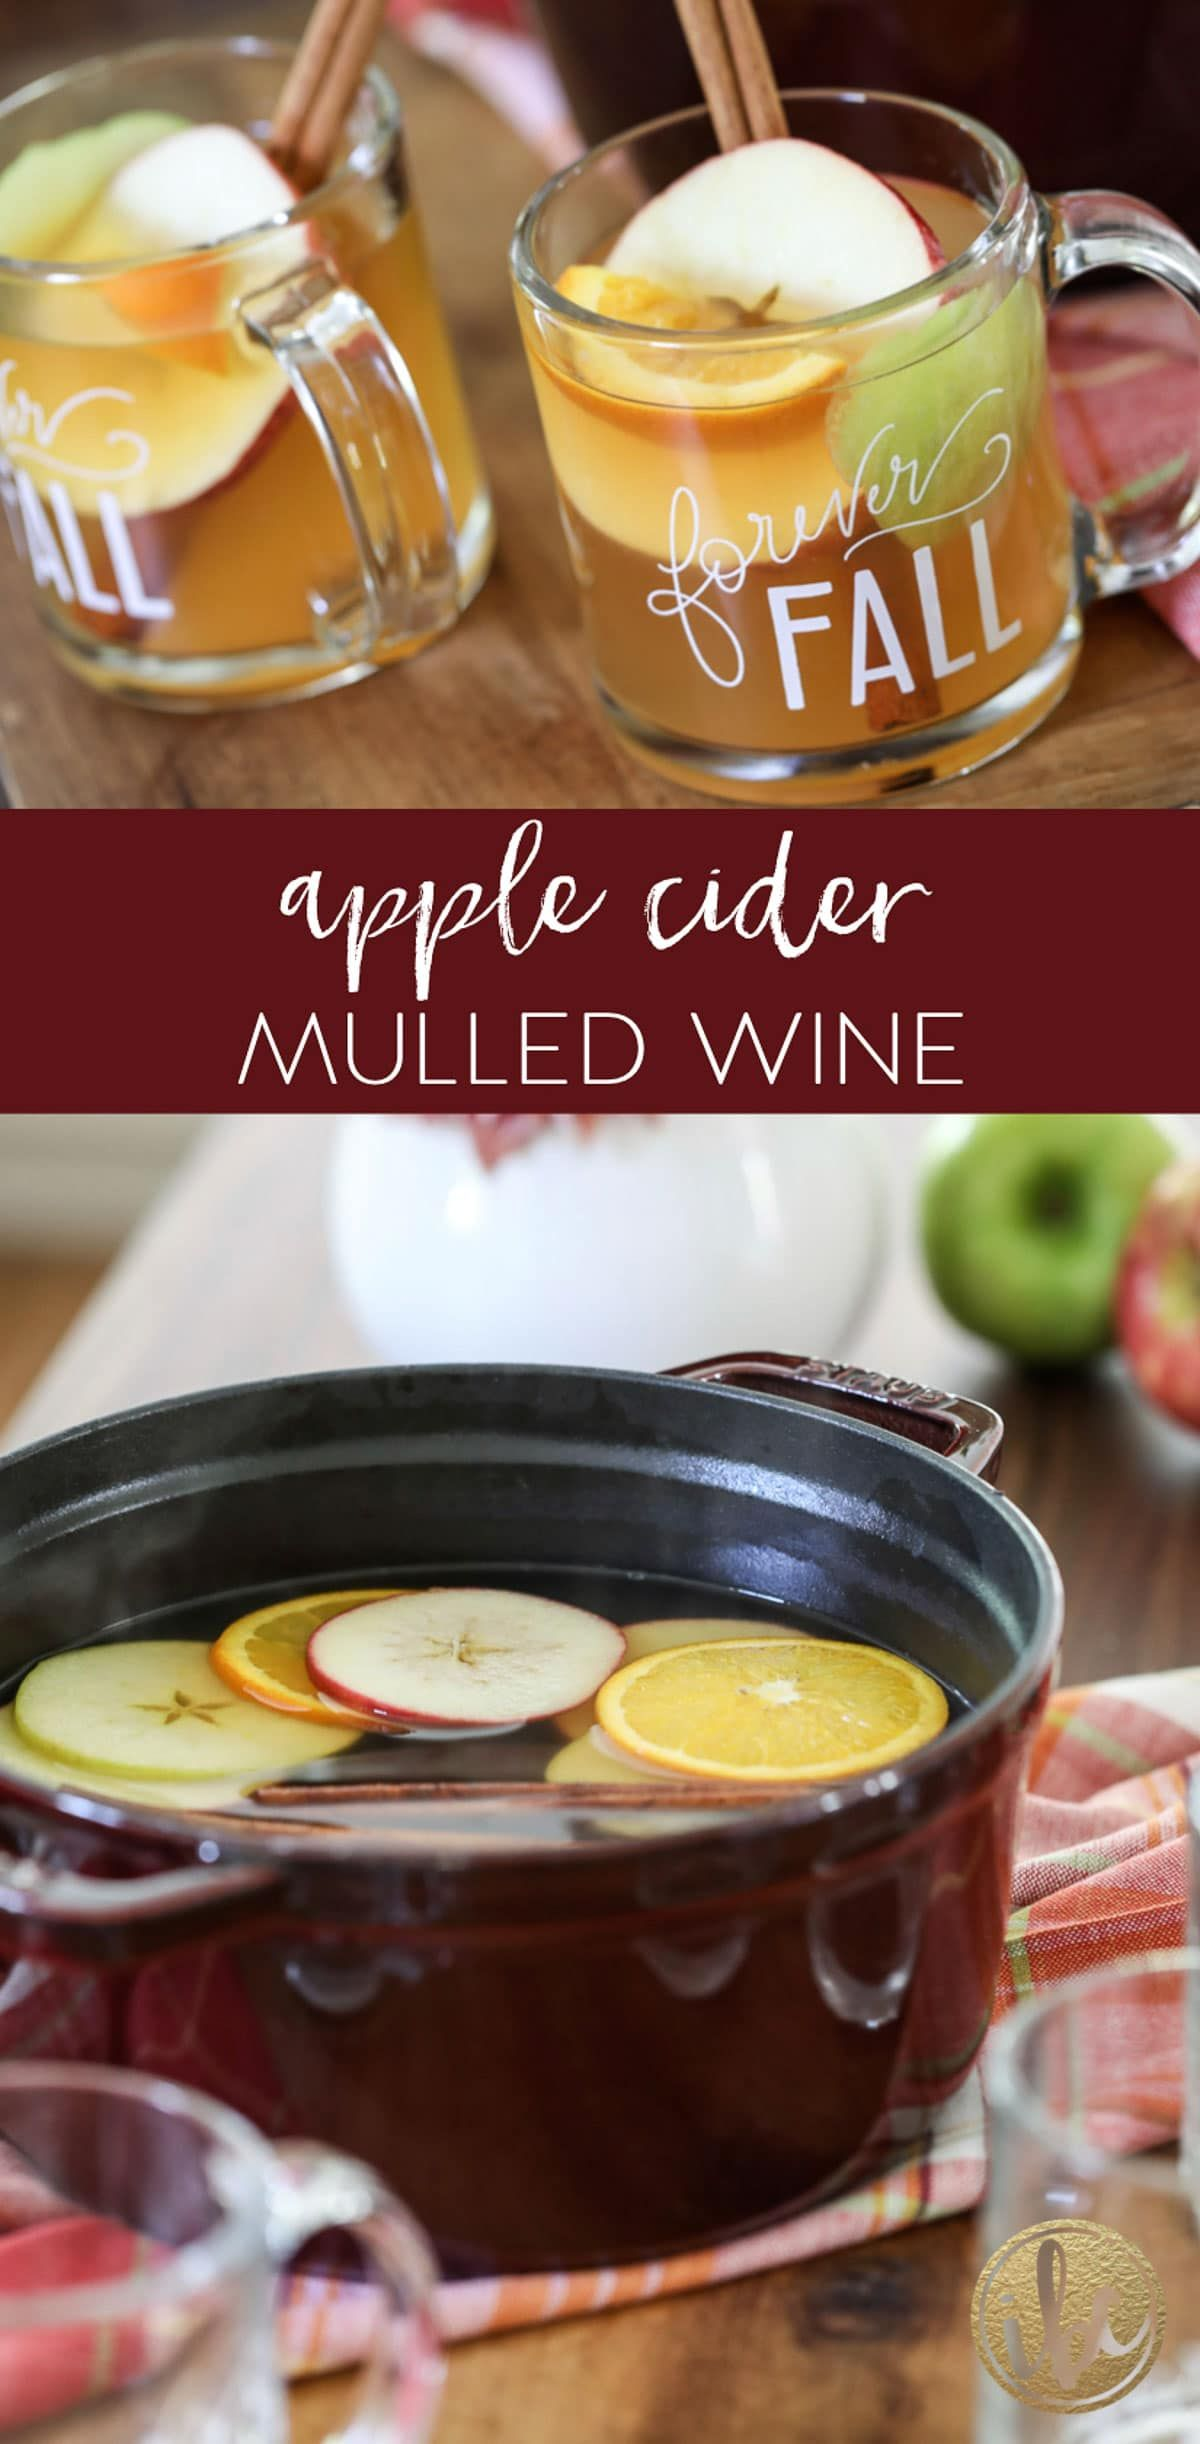 Homemade And Really Good Cider Mulled Wine Apple Cider Mulled Wine Fall Cocktail Recipe Via Fall Cocktails Recipes Mulled Wine Recipe Cider Wine Recipe